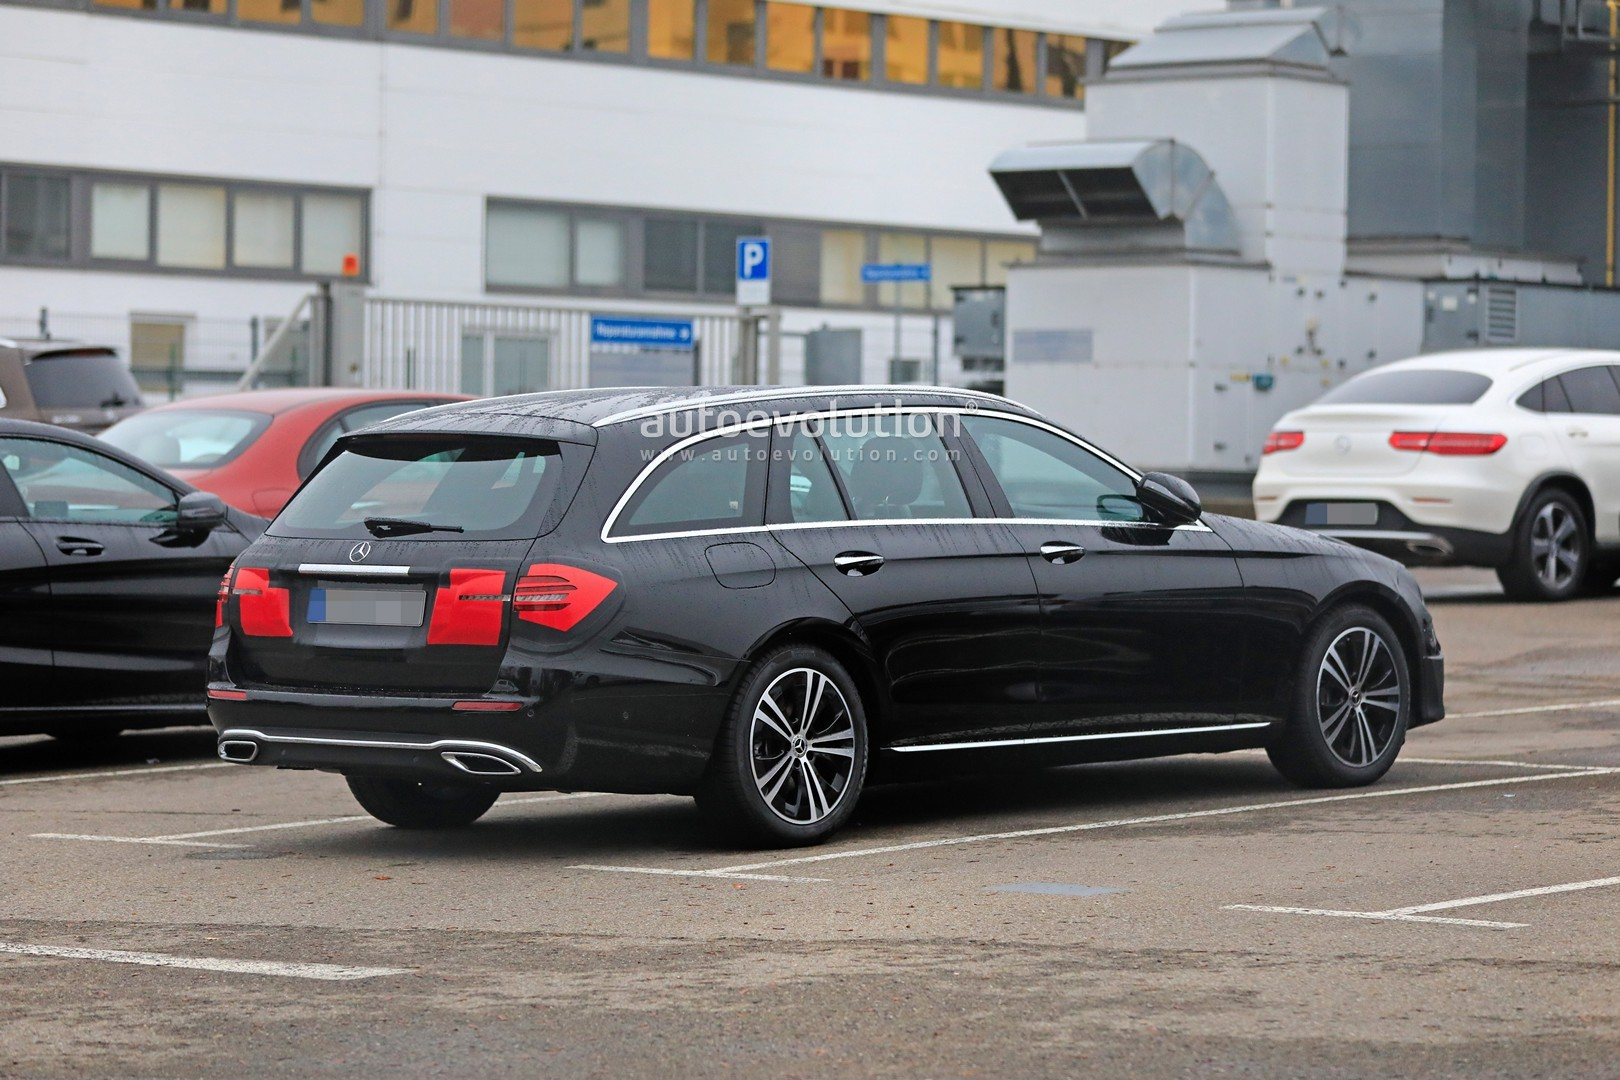 2020 - [Mercedes-Benz] Classe E restylée  2020-mercedes-e-class-spied-is-getting-a-new-face-inspided-by-cls-class_1